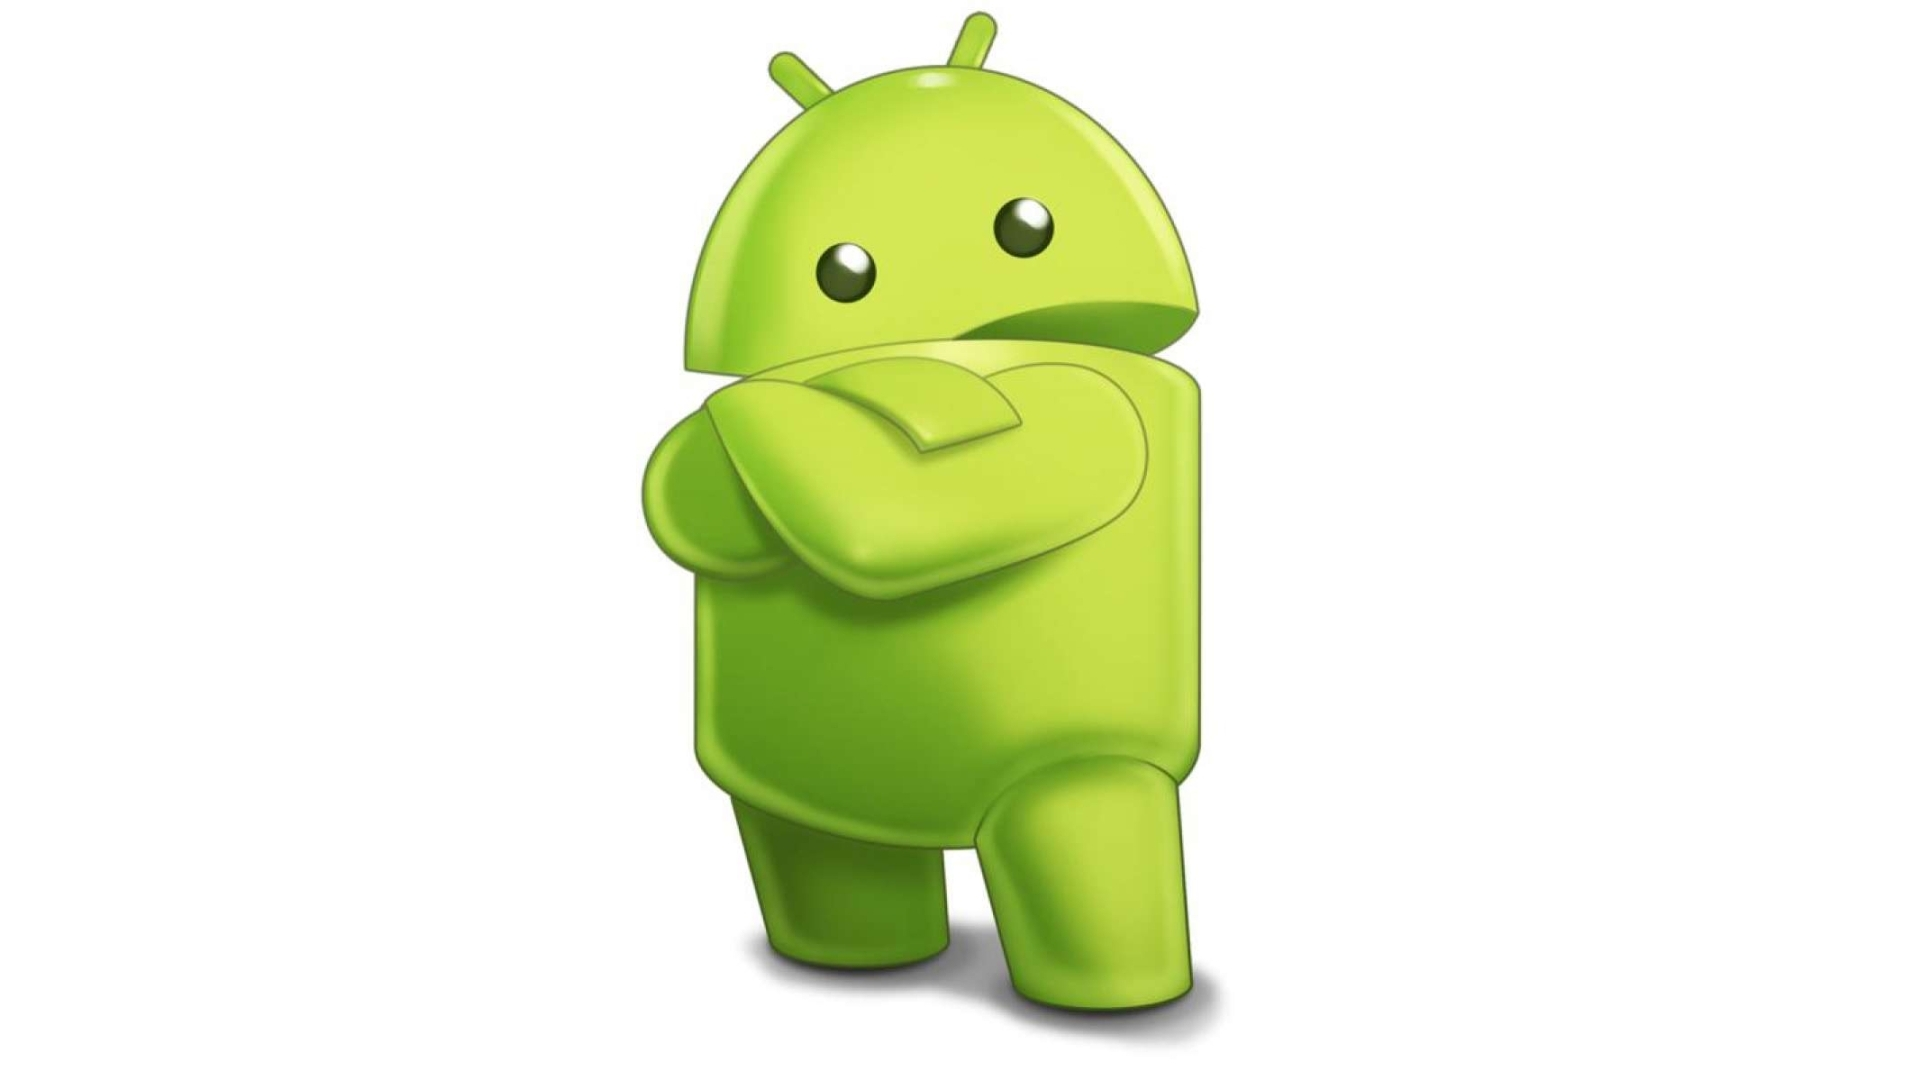 how to put ios apps on android